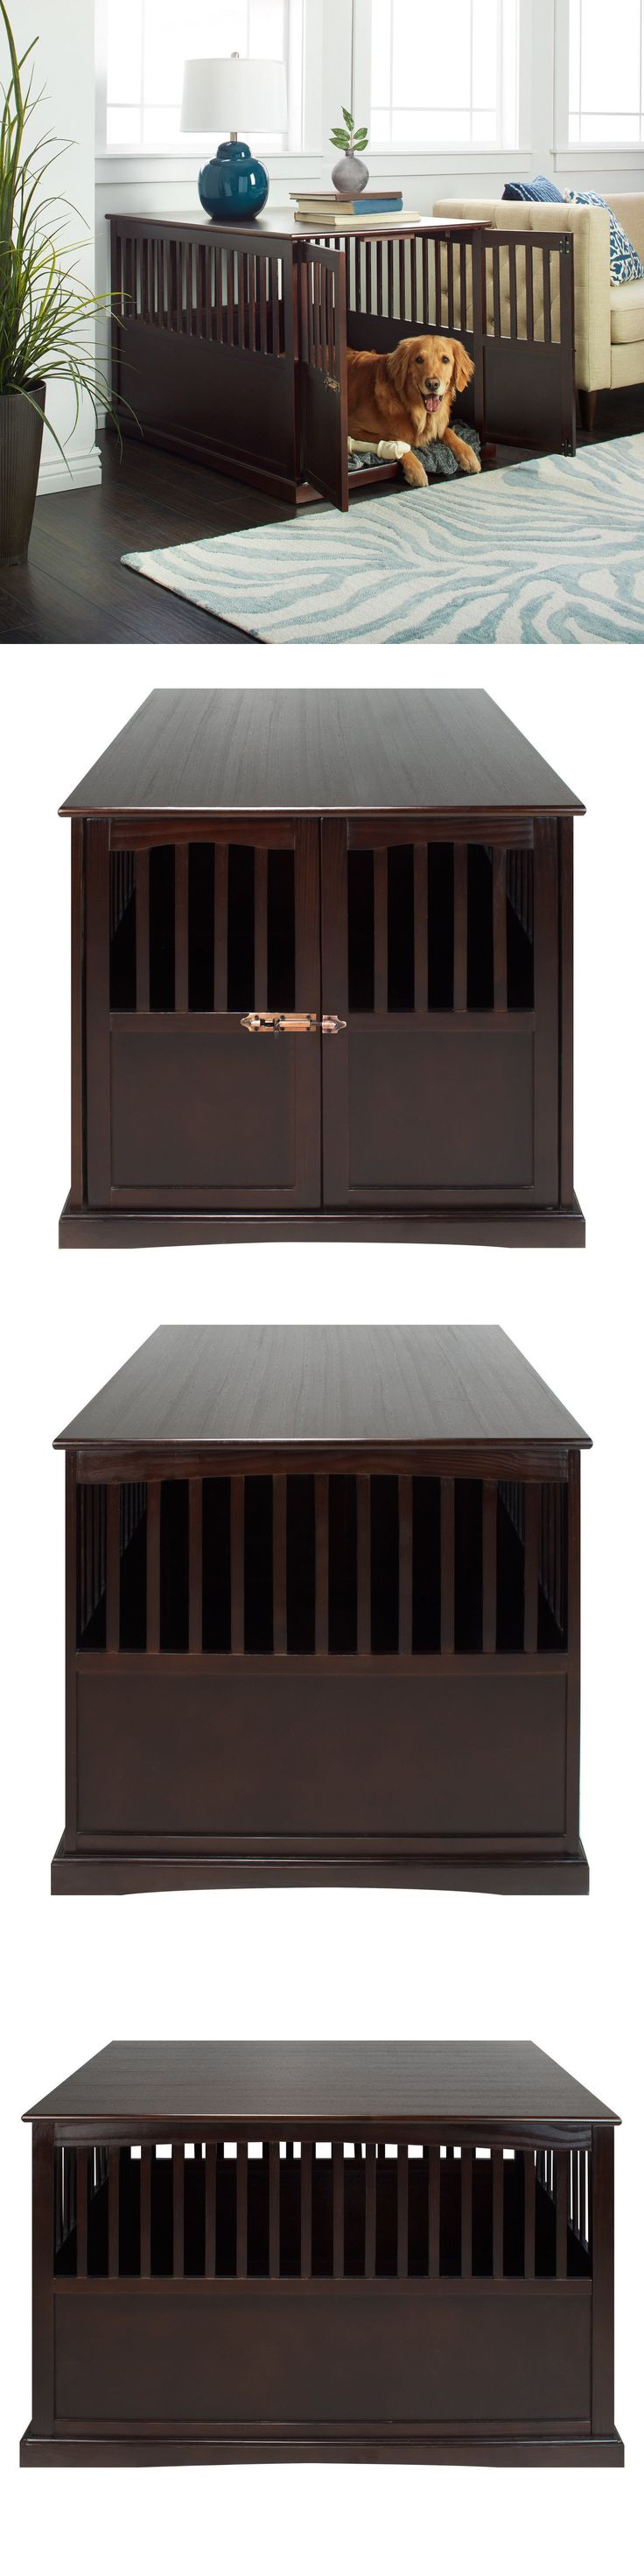 Cages and Crates 121851: Wooden Furniture Xl Pet Crate Espresso Solid Wood End Table Kennel Consule Decor -> BUY IT NOW ONLY: $195.54 on eBay!